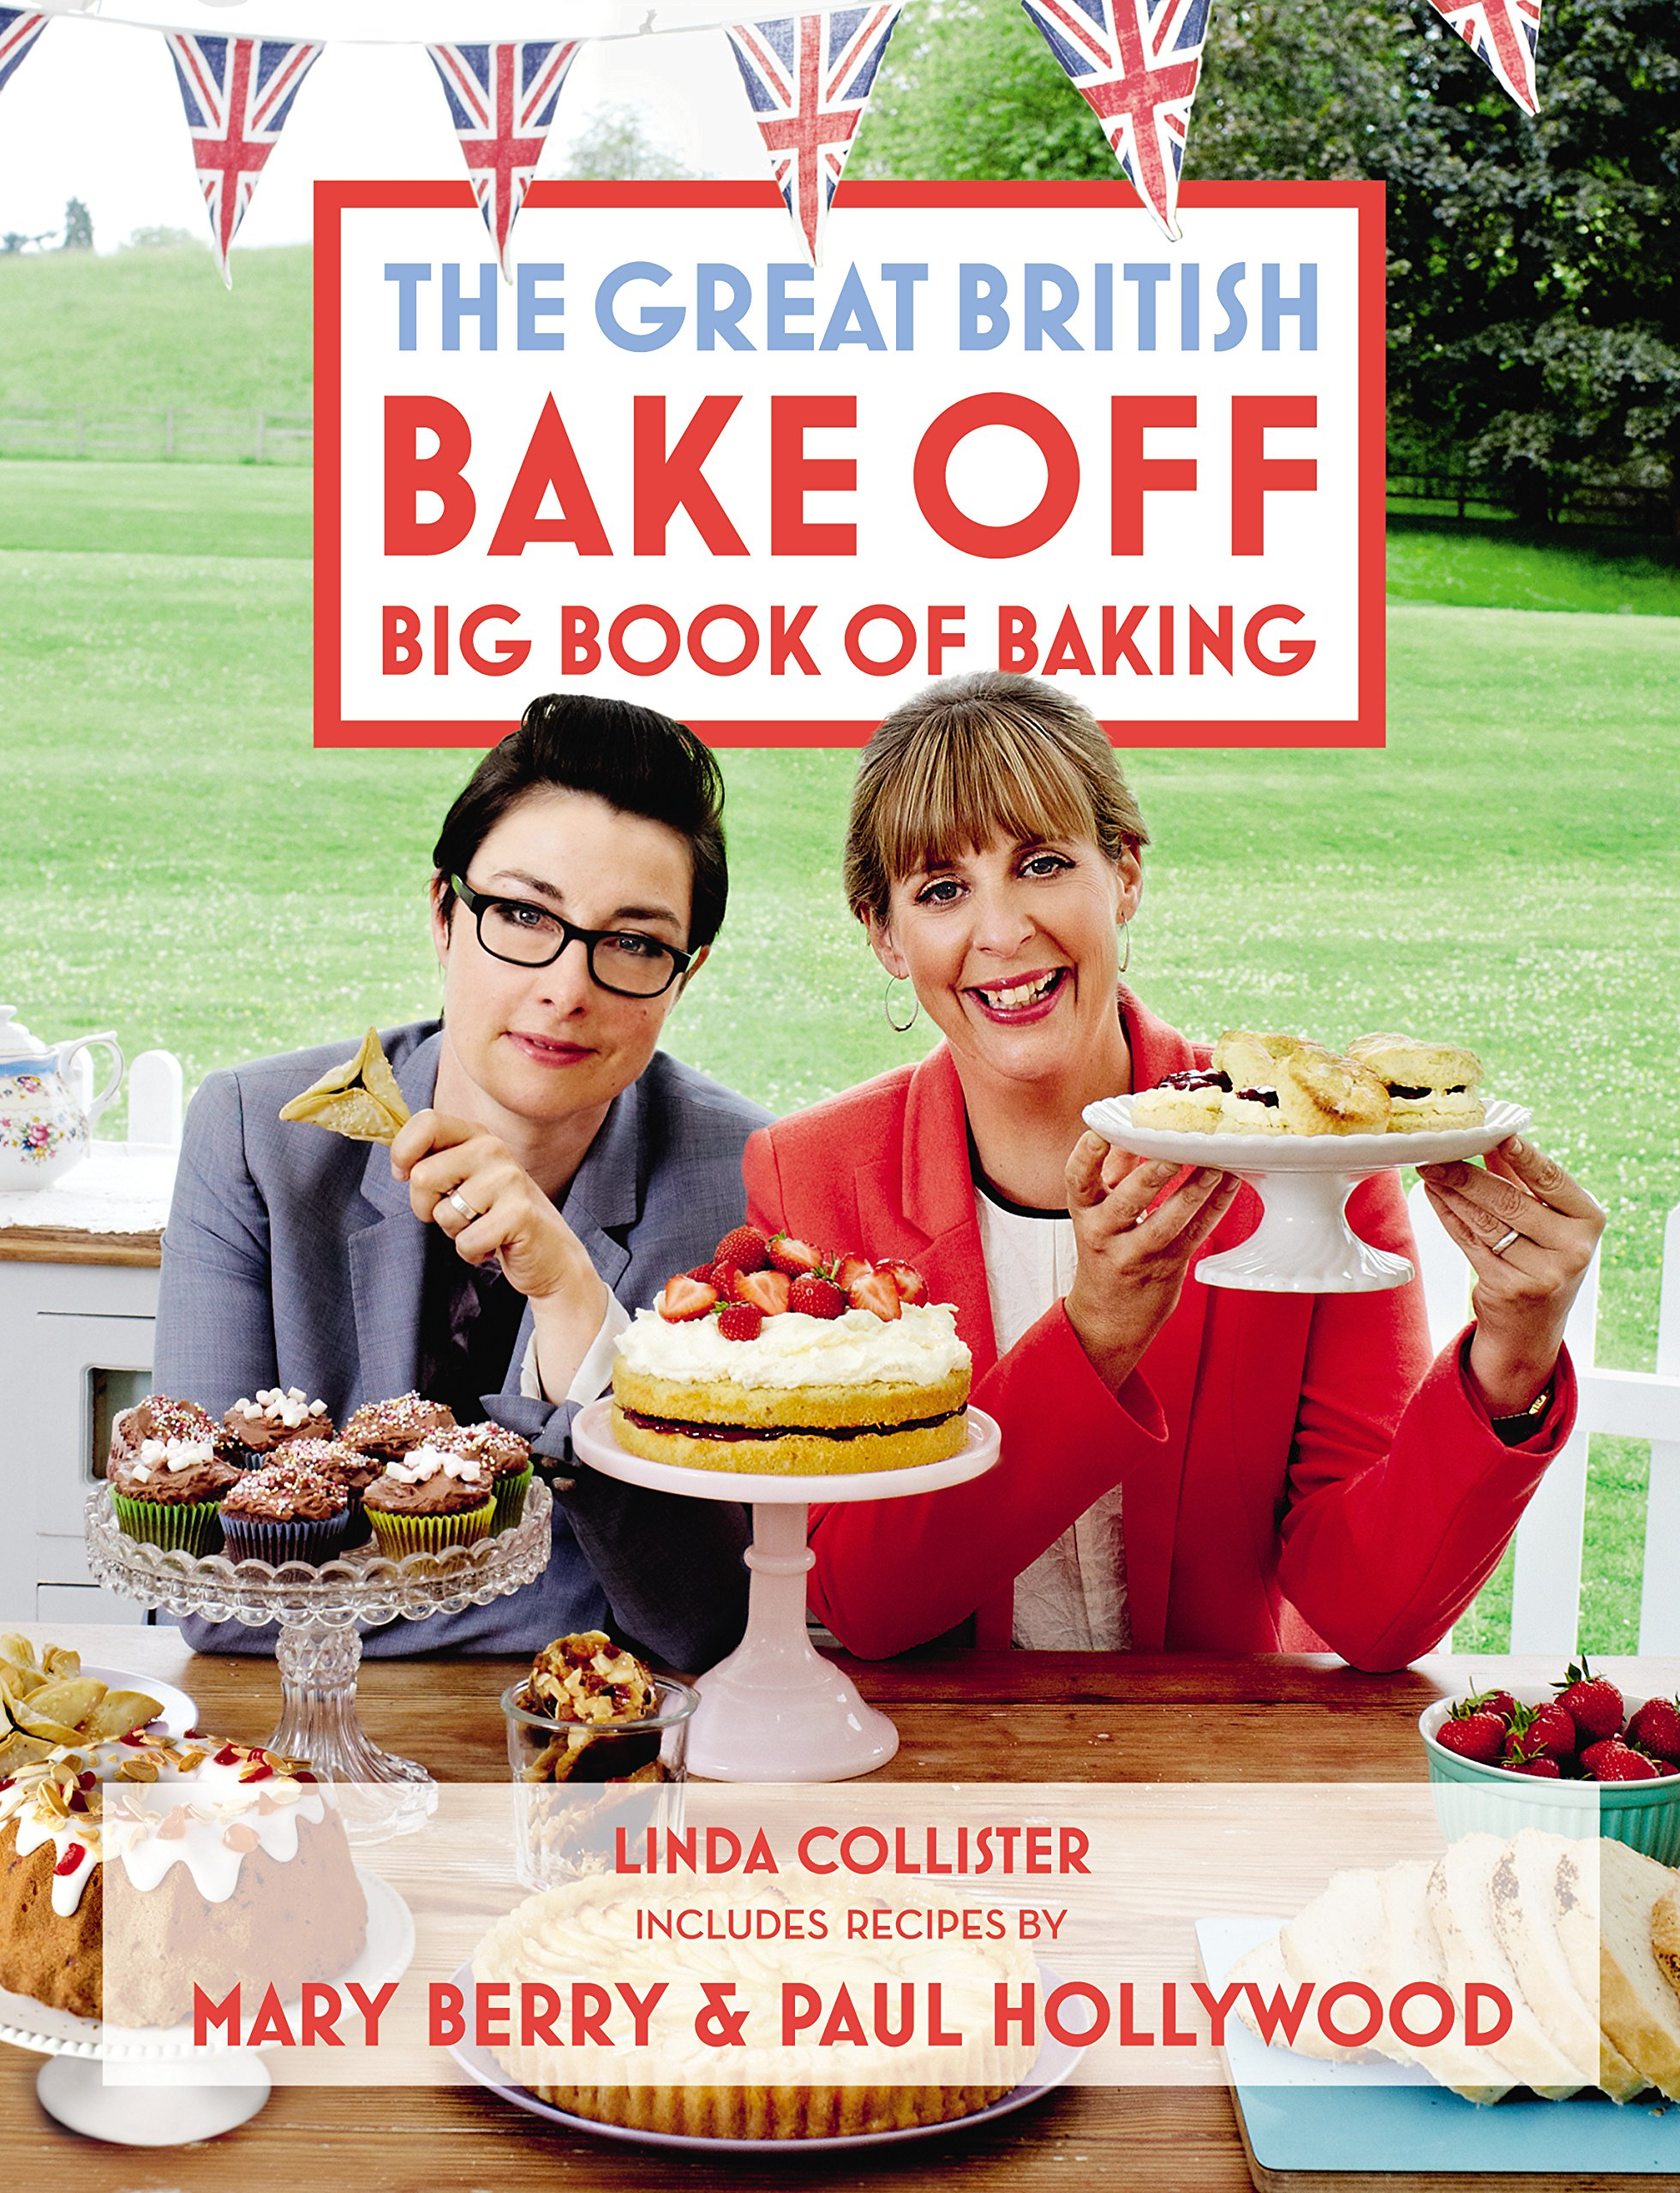 The great British Bake off - Big book of baking